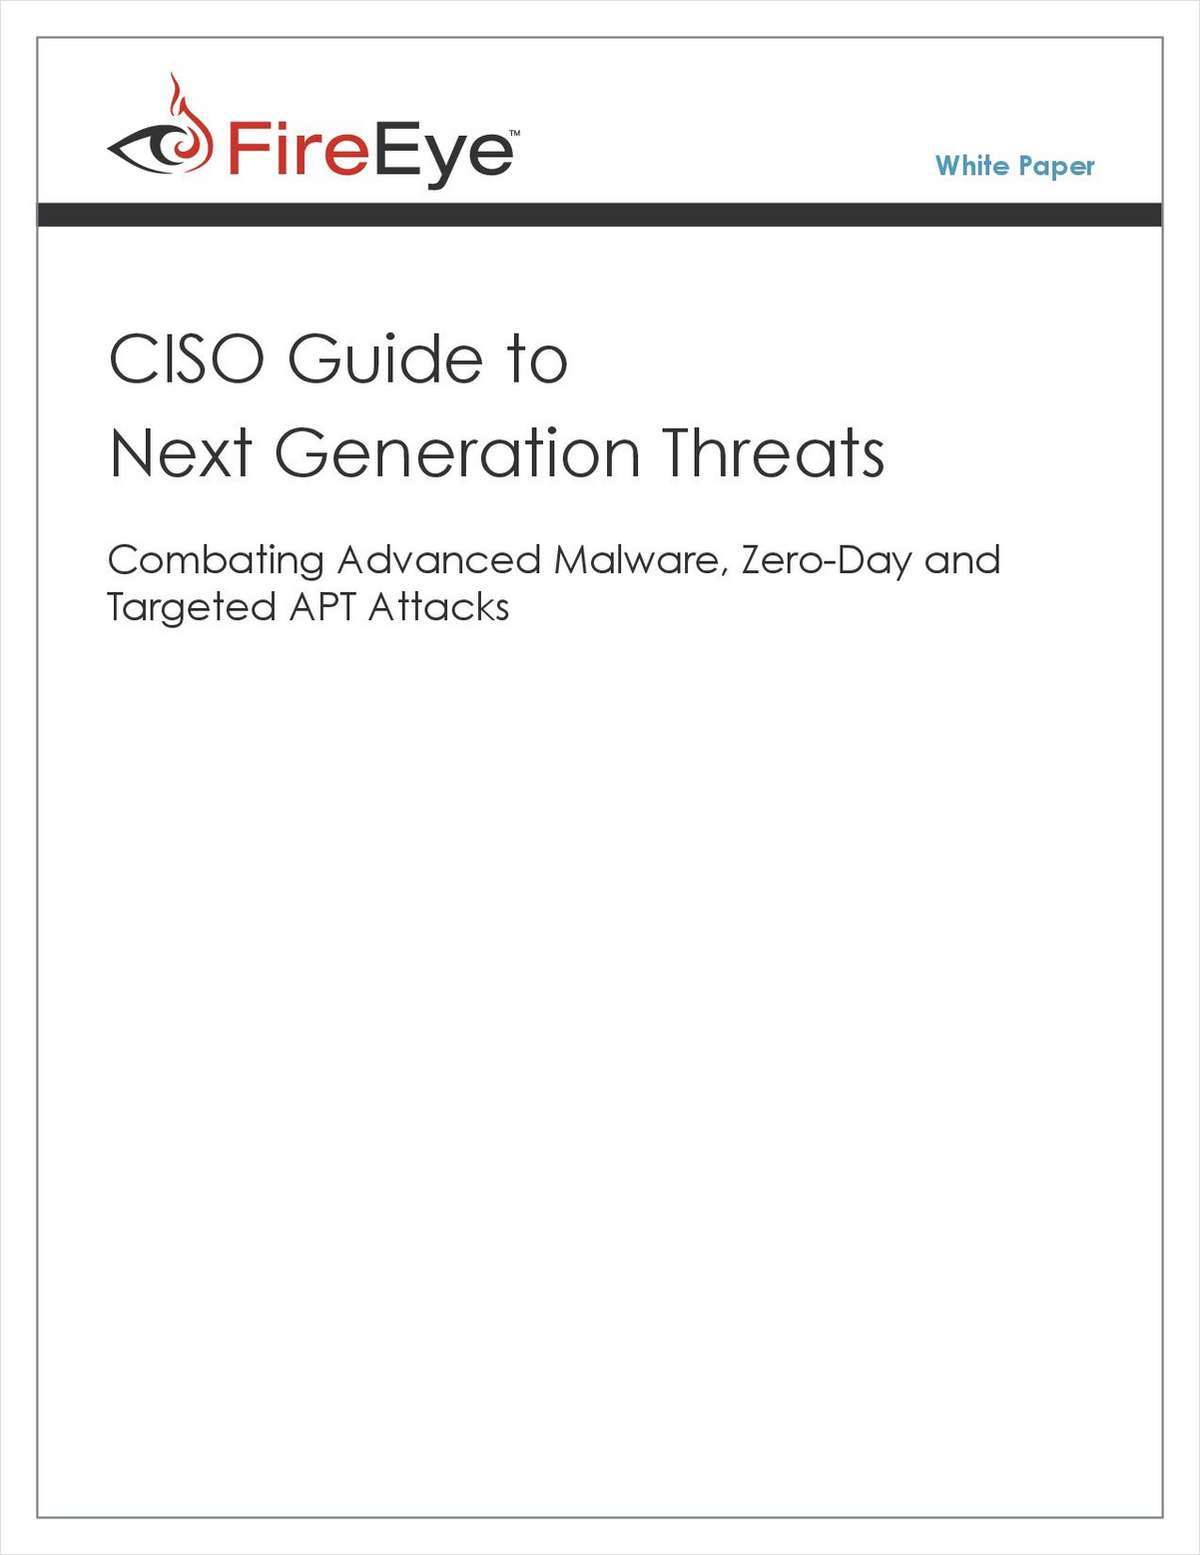 CISO Guide to Next Generation Threats